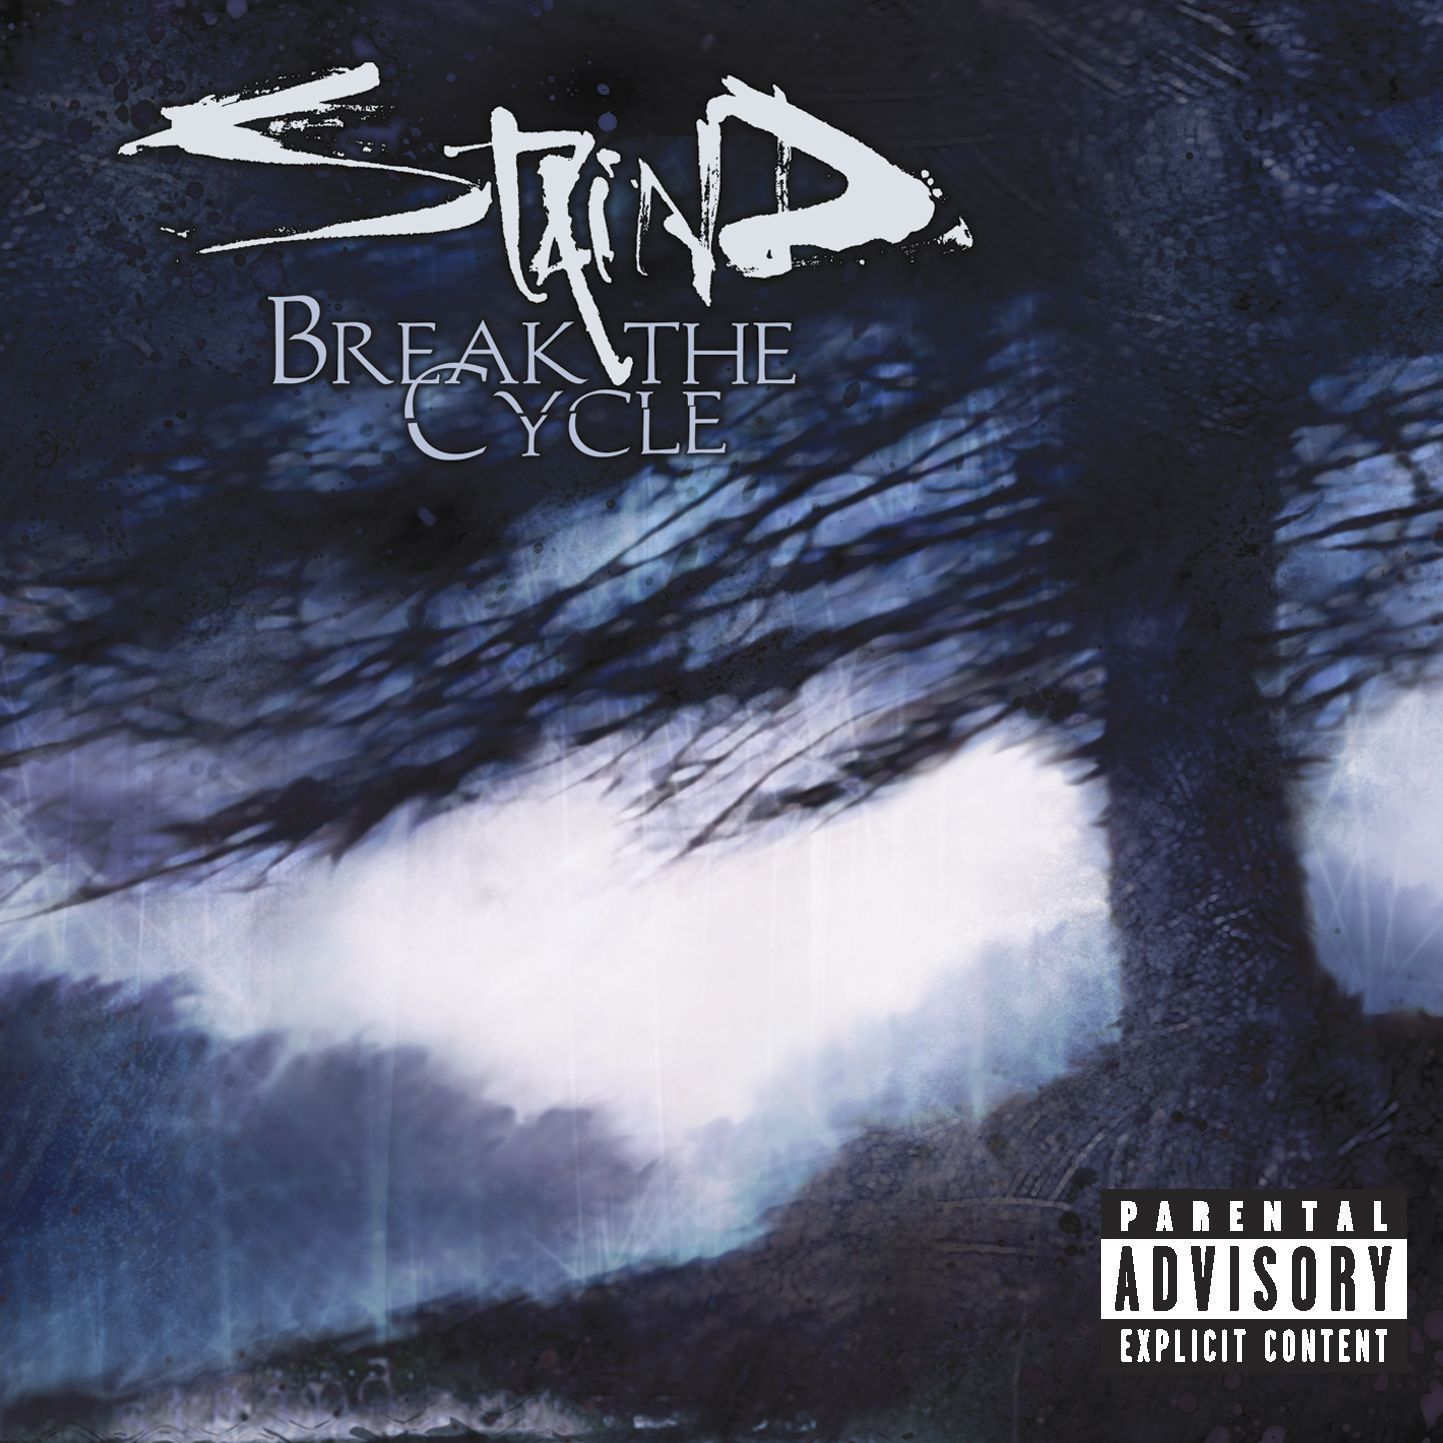 Break the Cycle by Staind on iTunes Staind songs, Rock